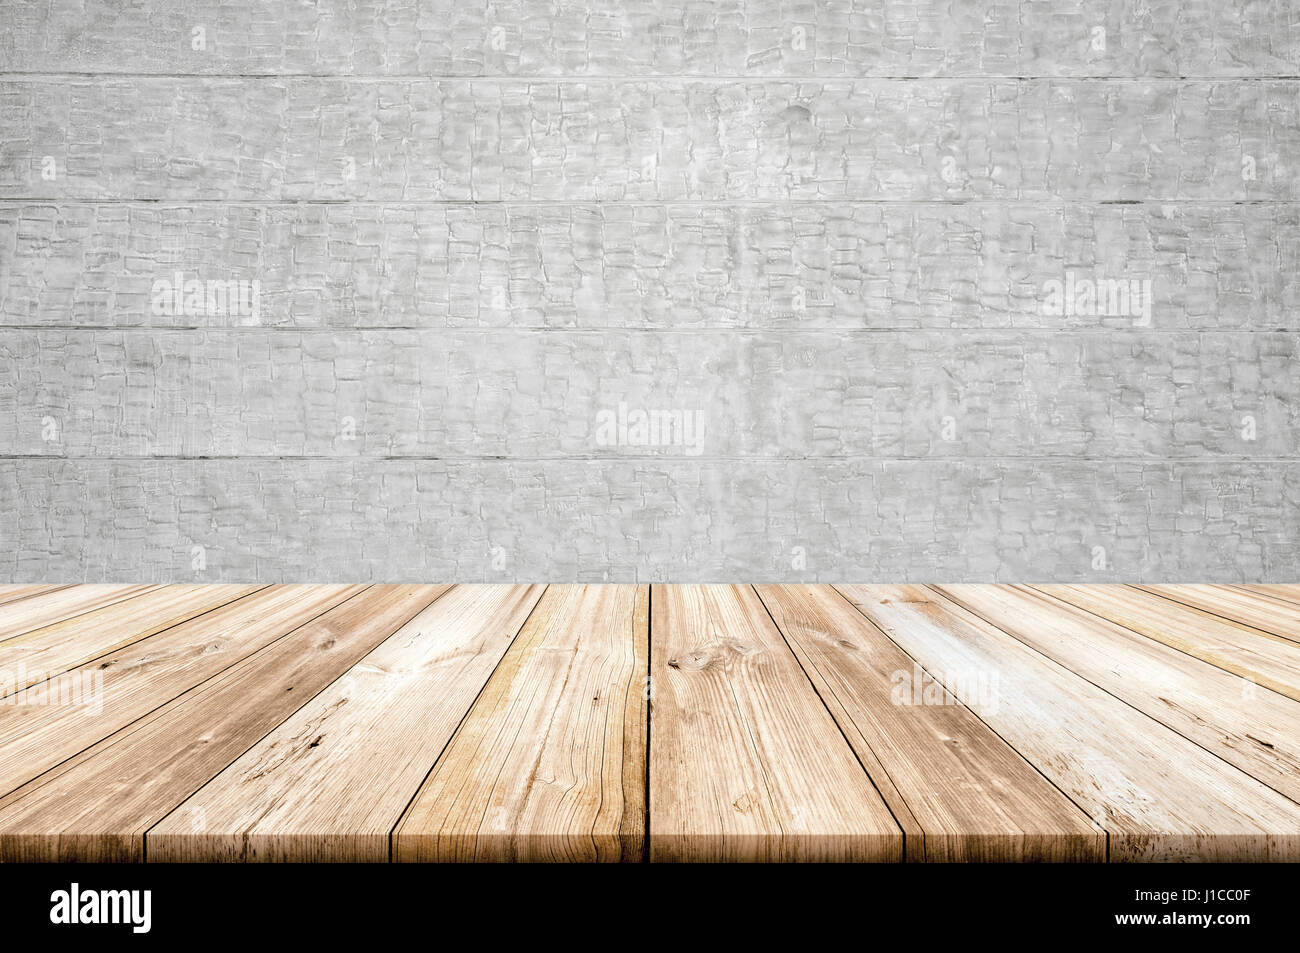 Empty Light Wood Table Top With Concrete Wall Background. Can Be Used For  Montage Products Display Or Design Key Visual Layout.